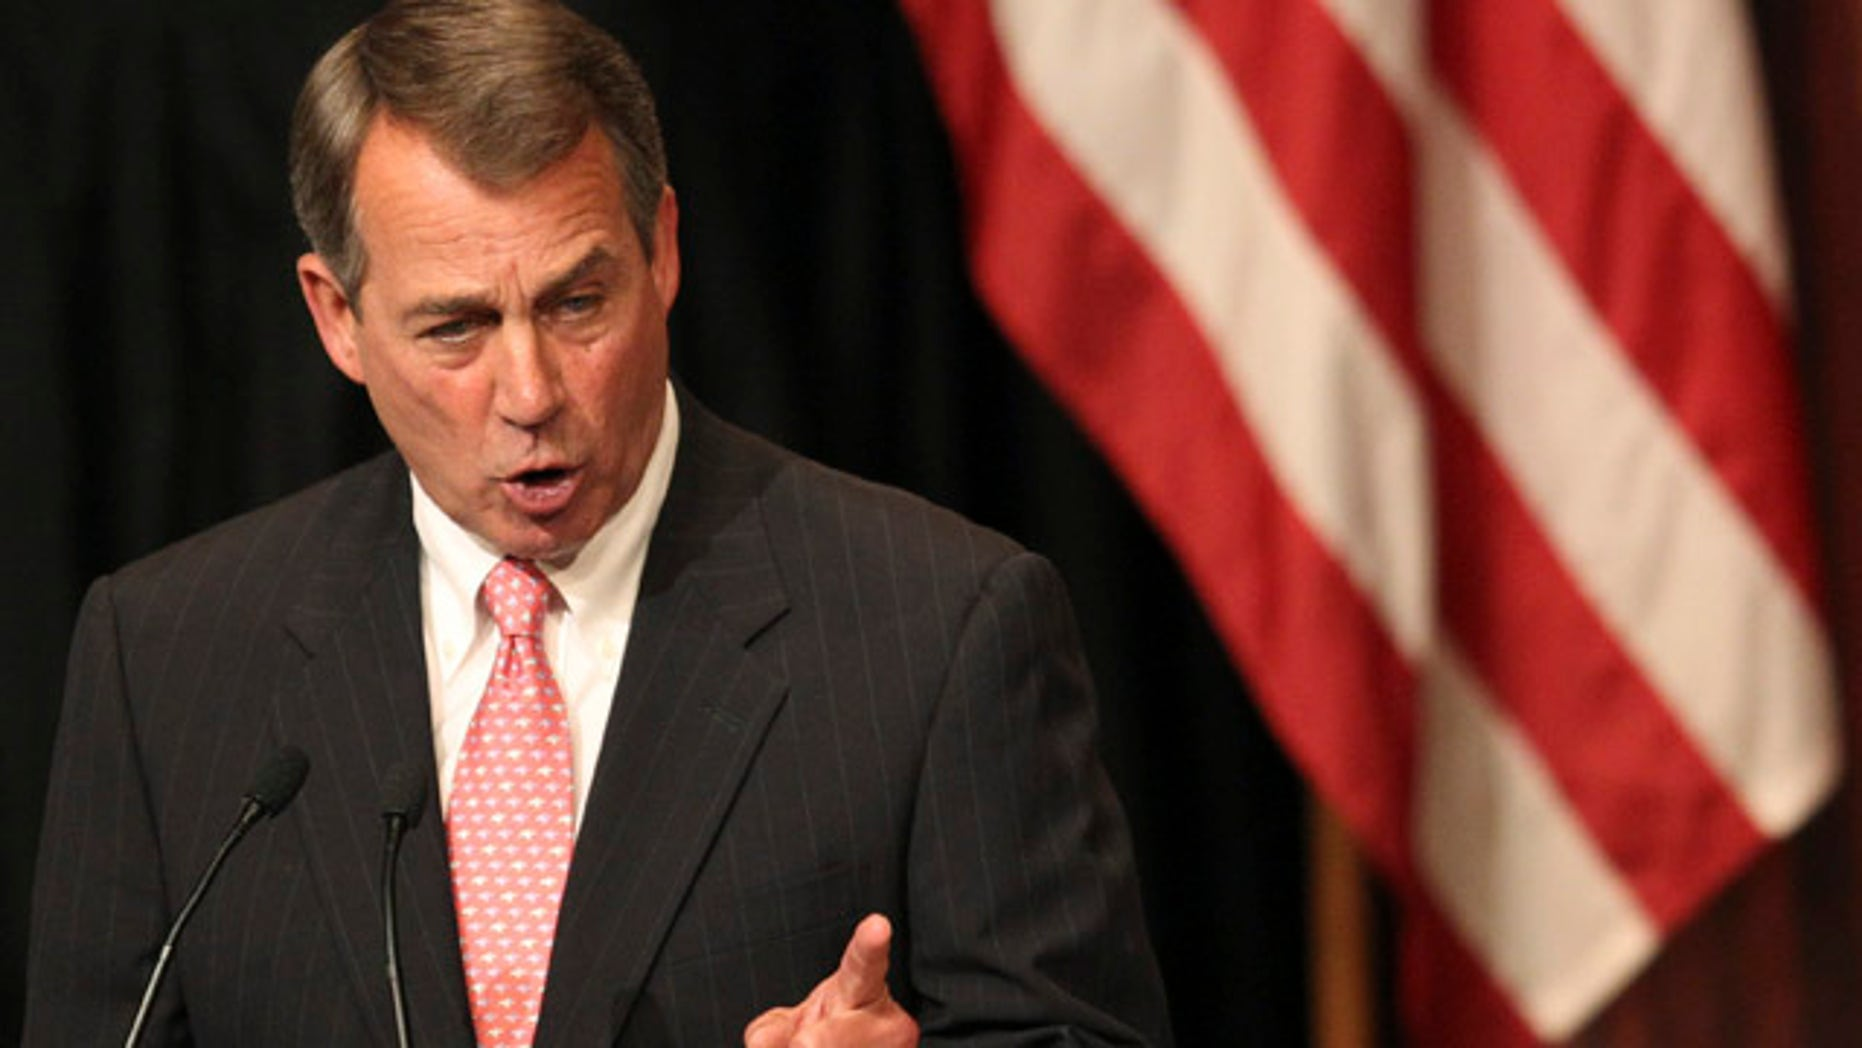 May 9: U.S. House Speaker John Boehner gestures as he addresses the Economic Club of New York